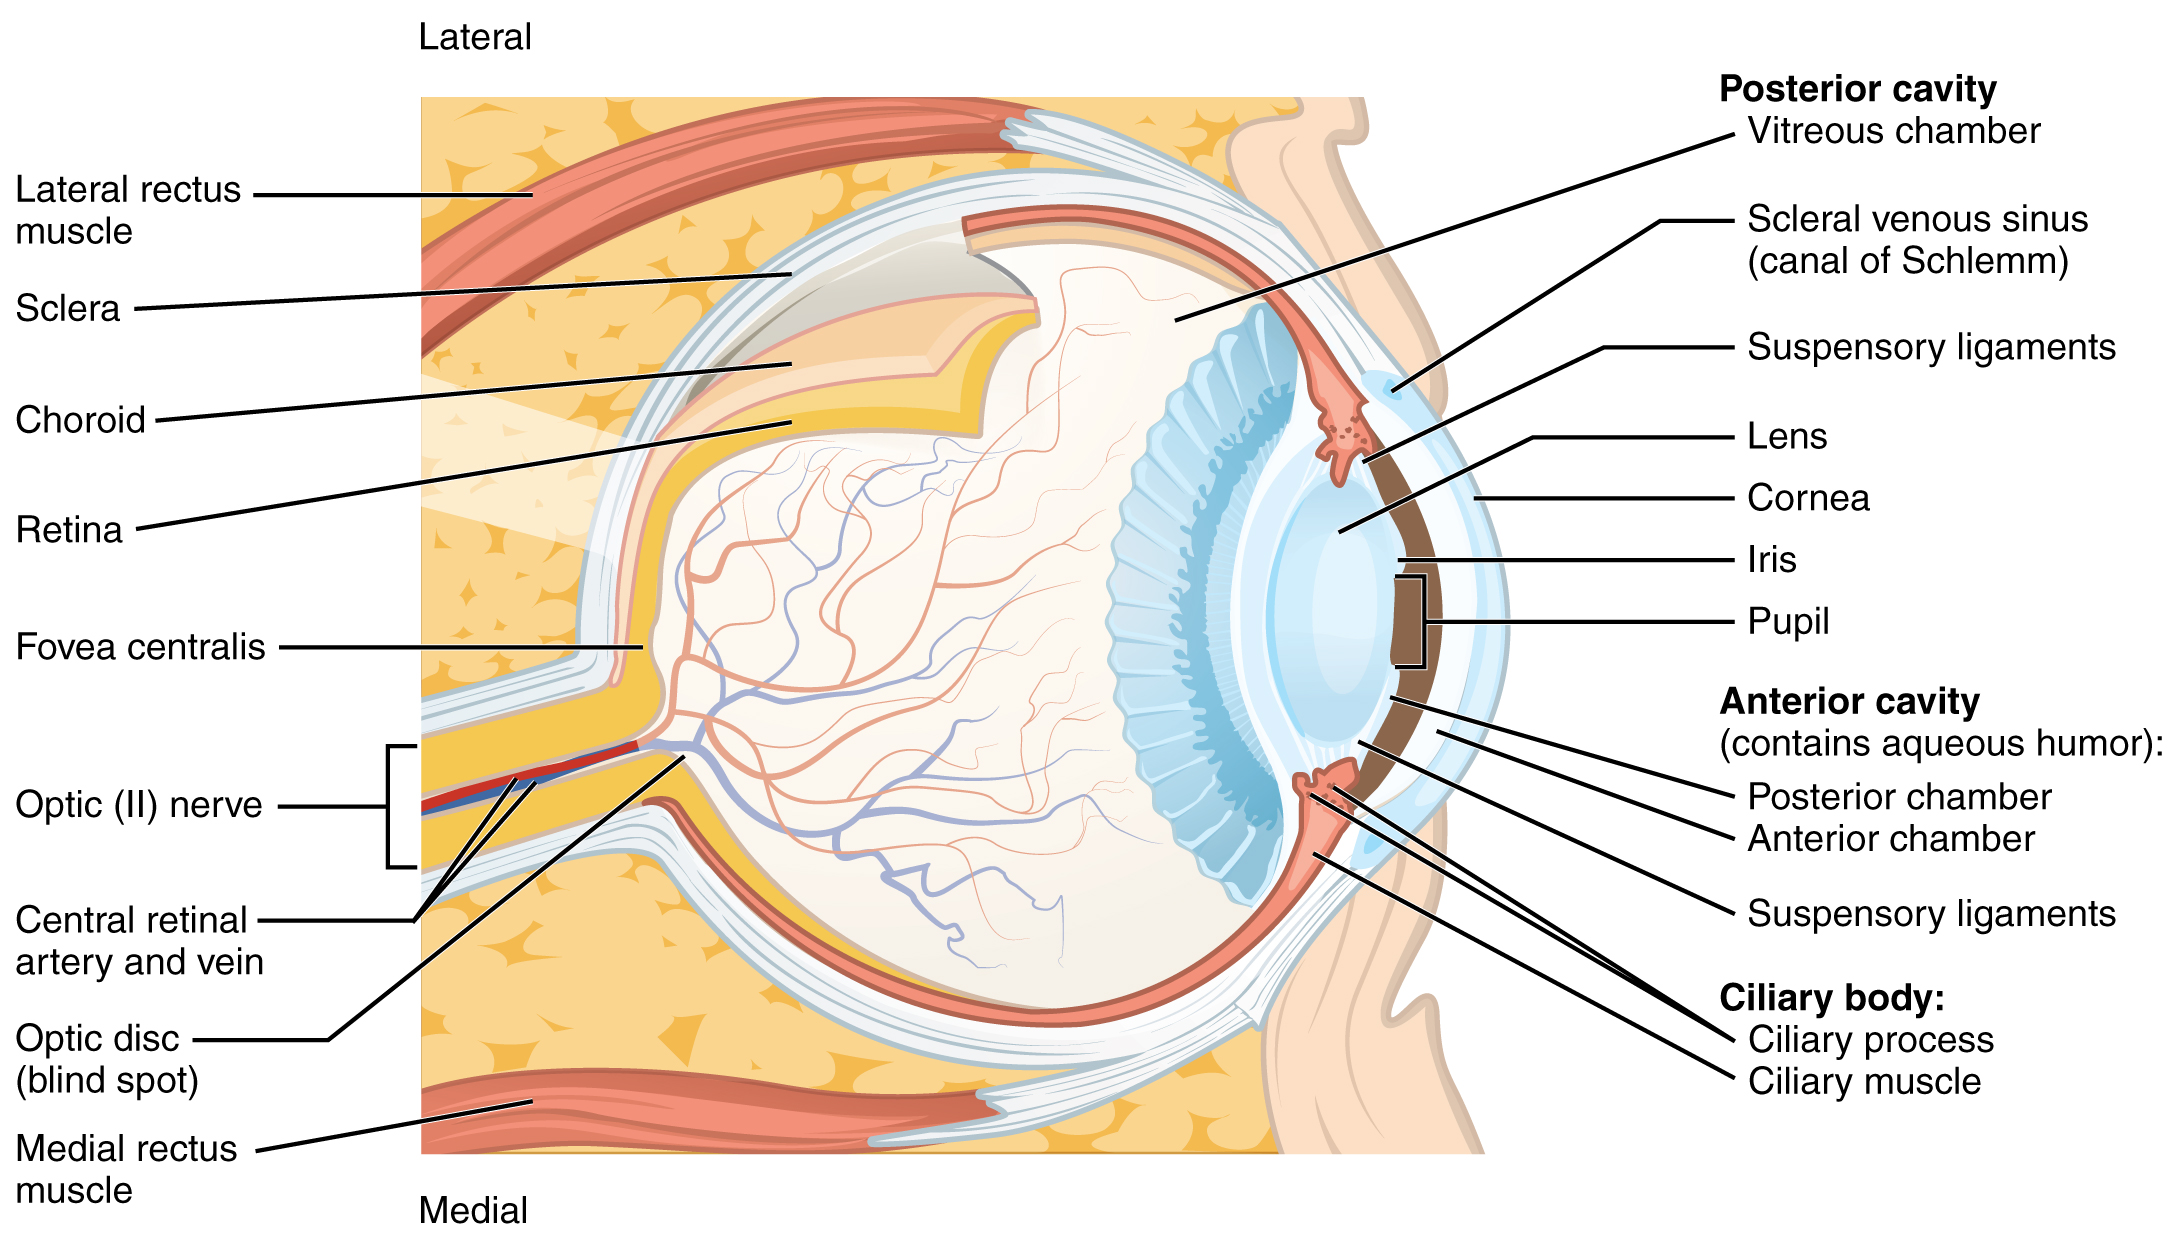 This diagram shows the structure of the eye with the major parts labeled.